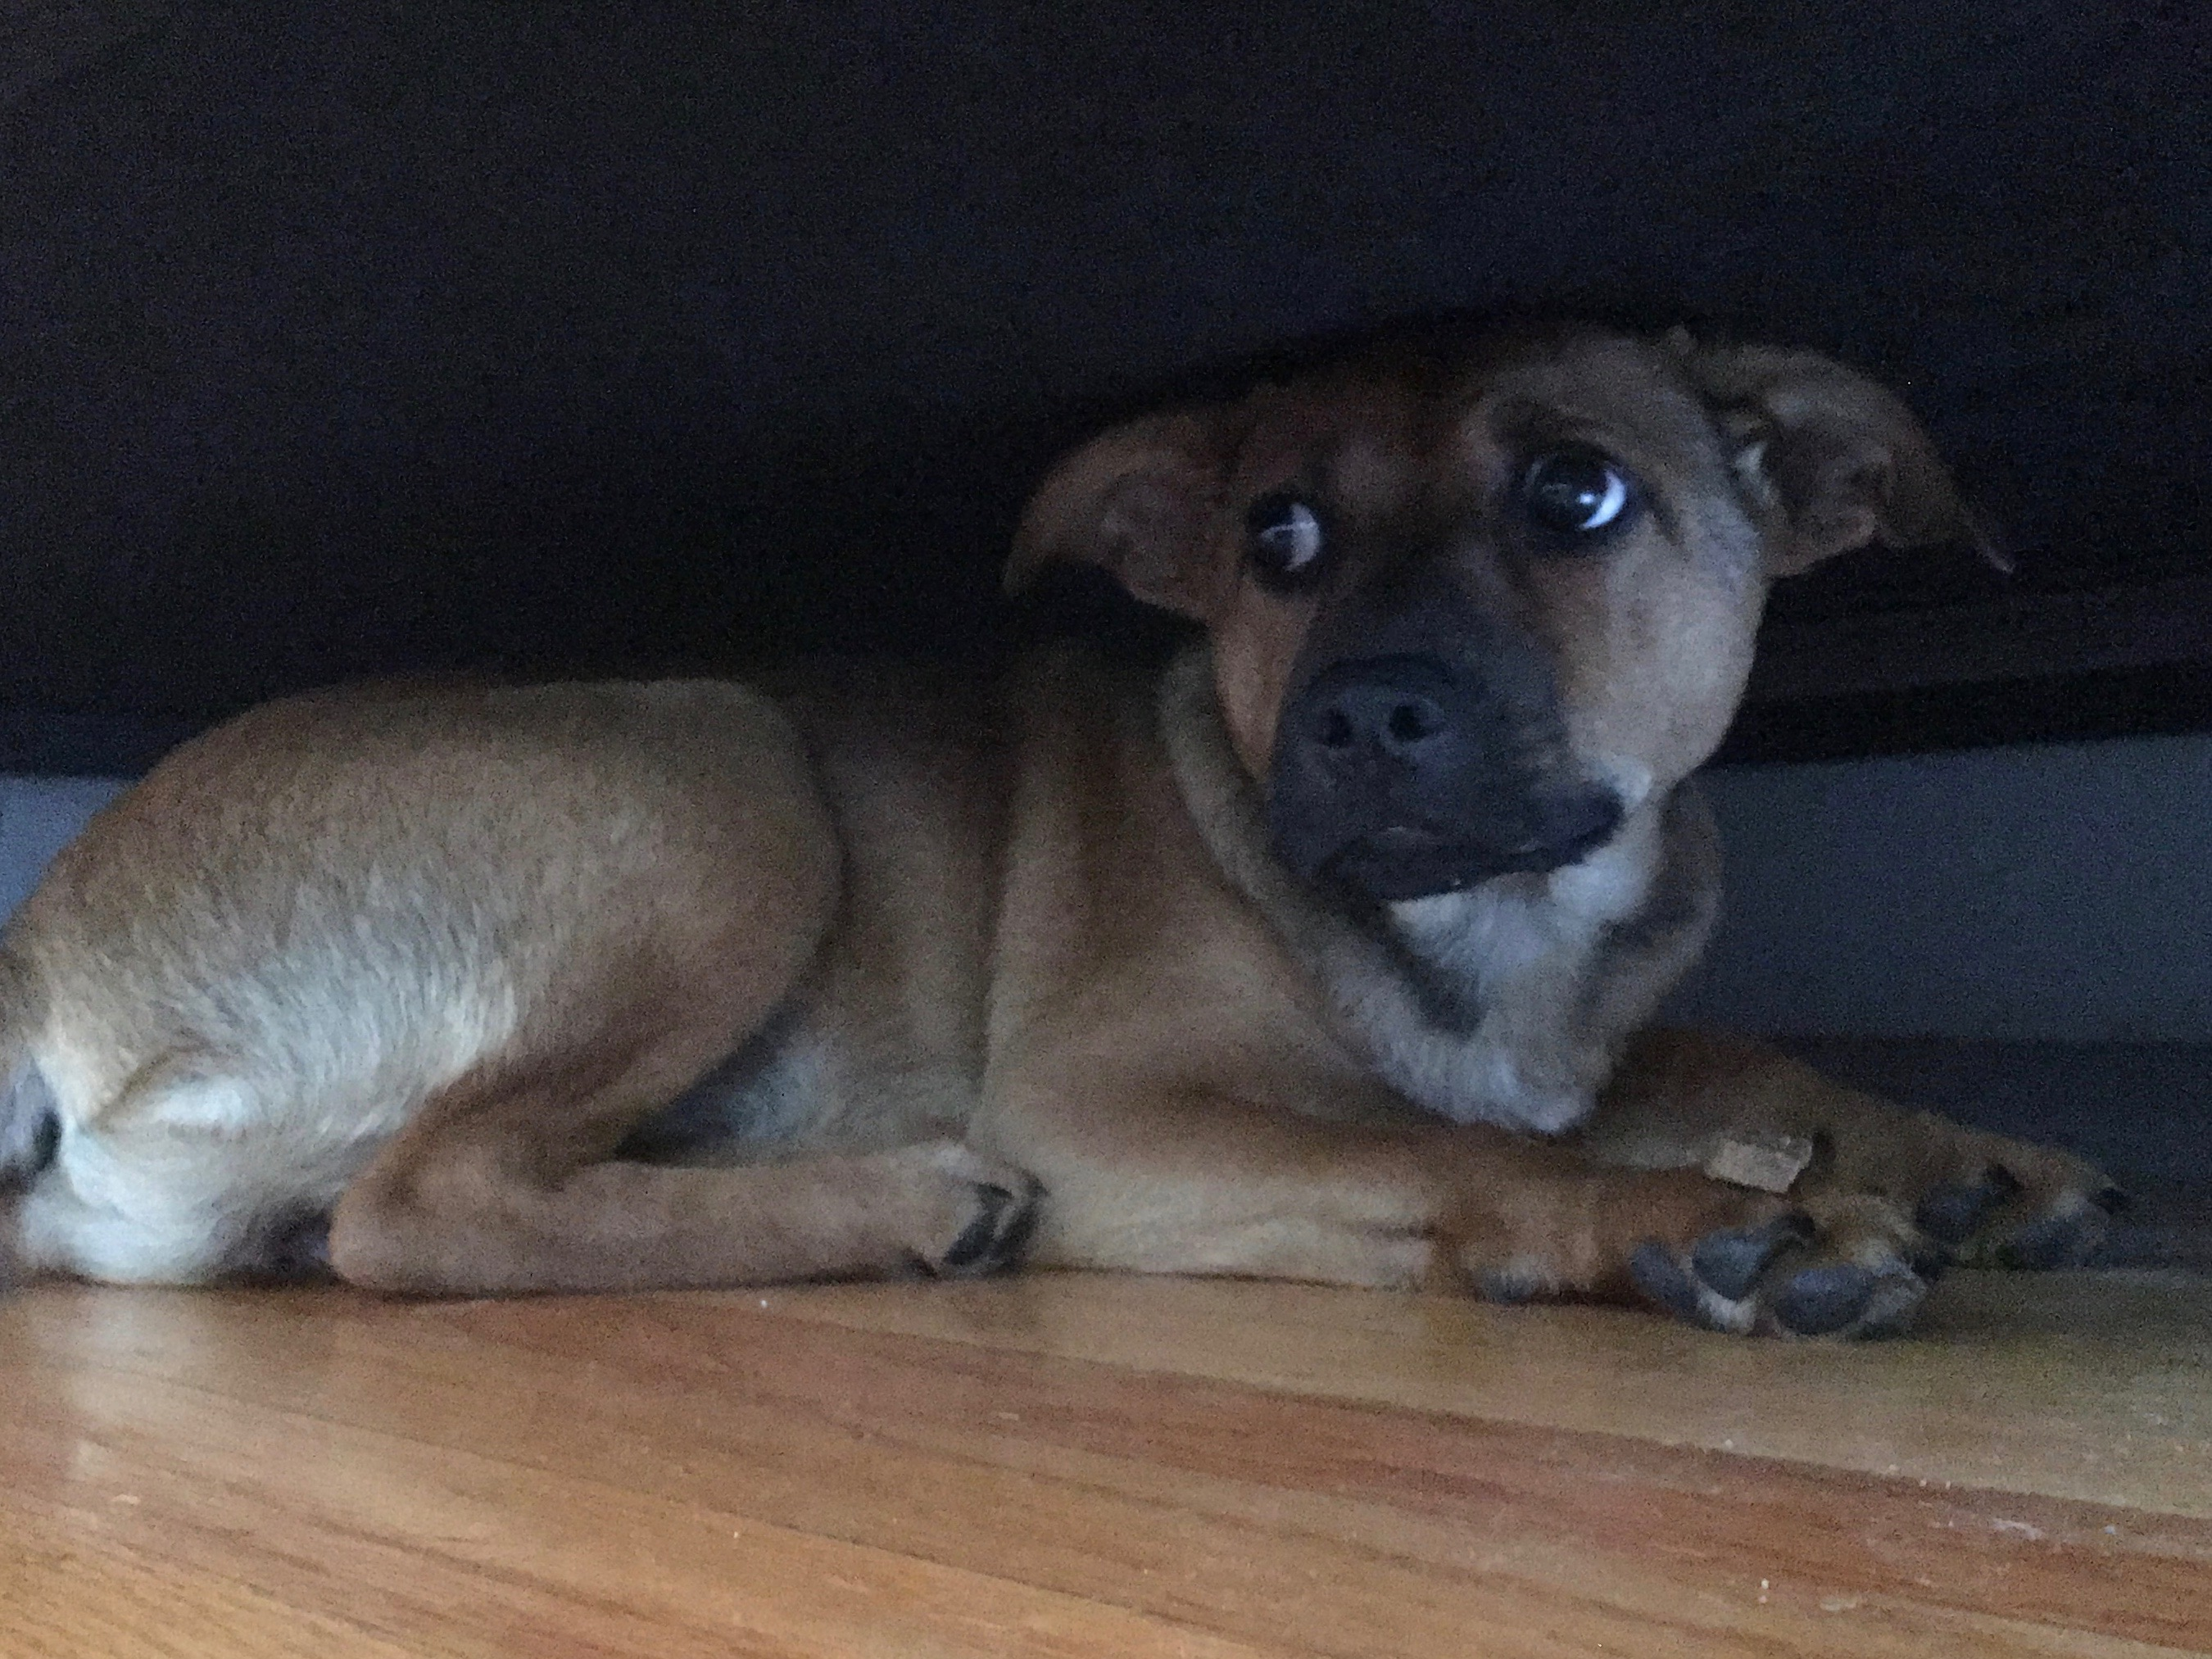 Puppy Hiding Under Bed With Treat Balanced On Her Paw